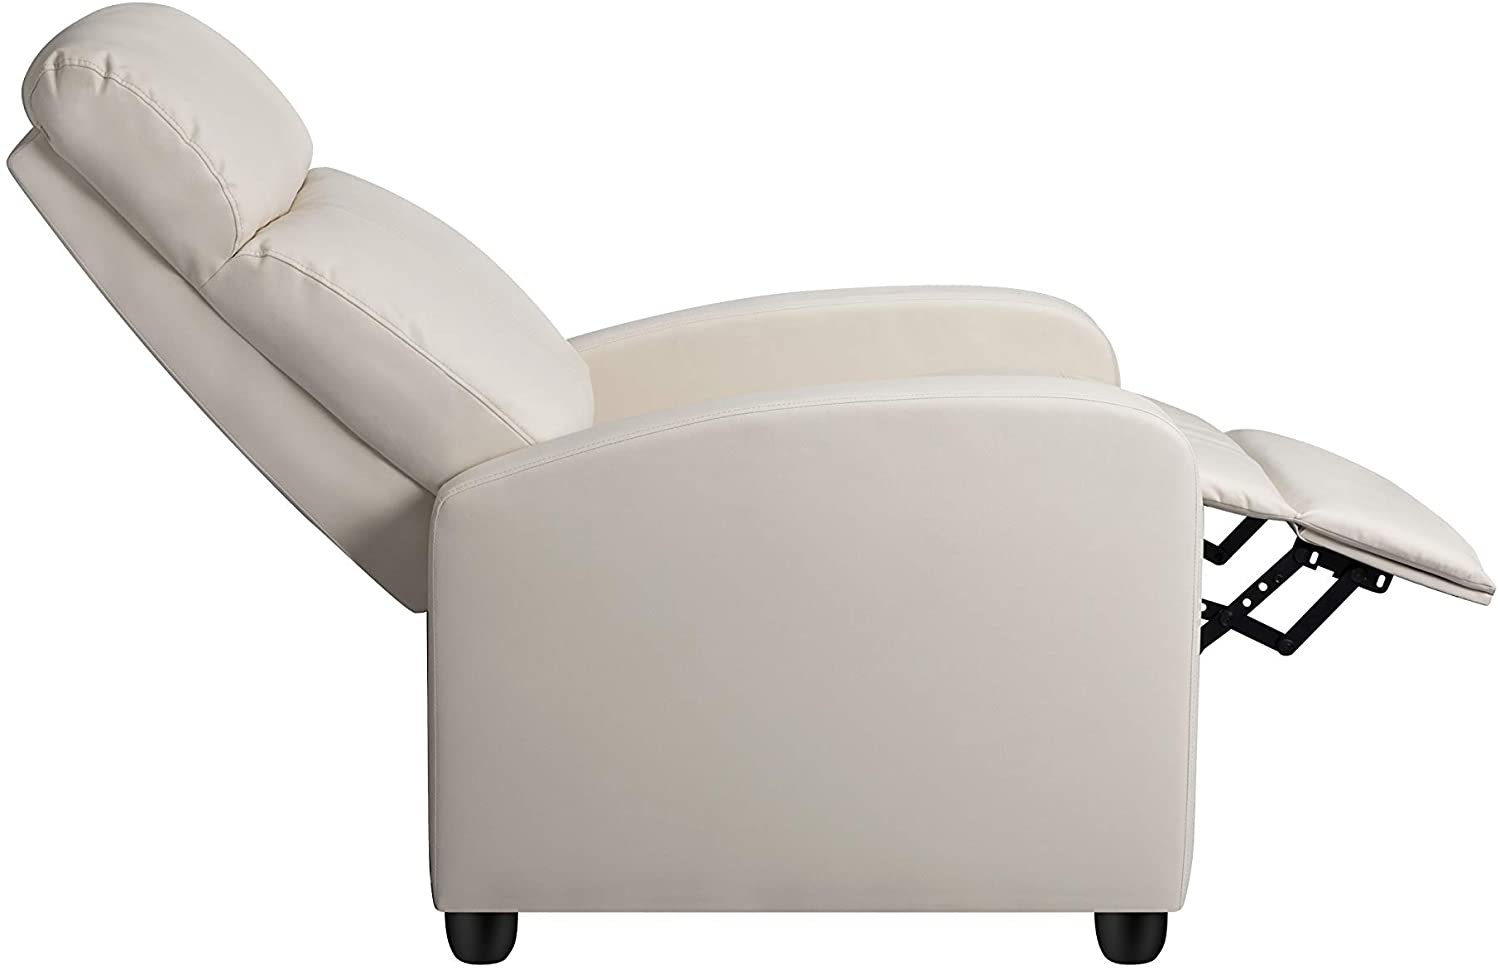 YAHEETECH Recliner Chair Faux Leather Recliner Sofa